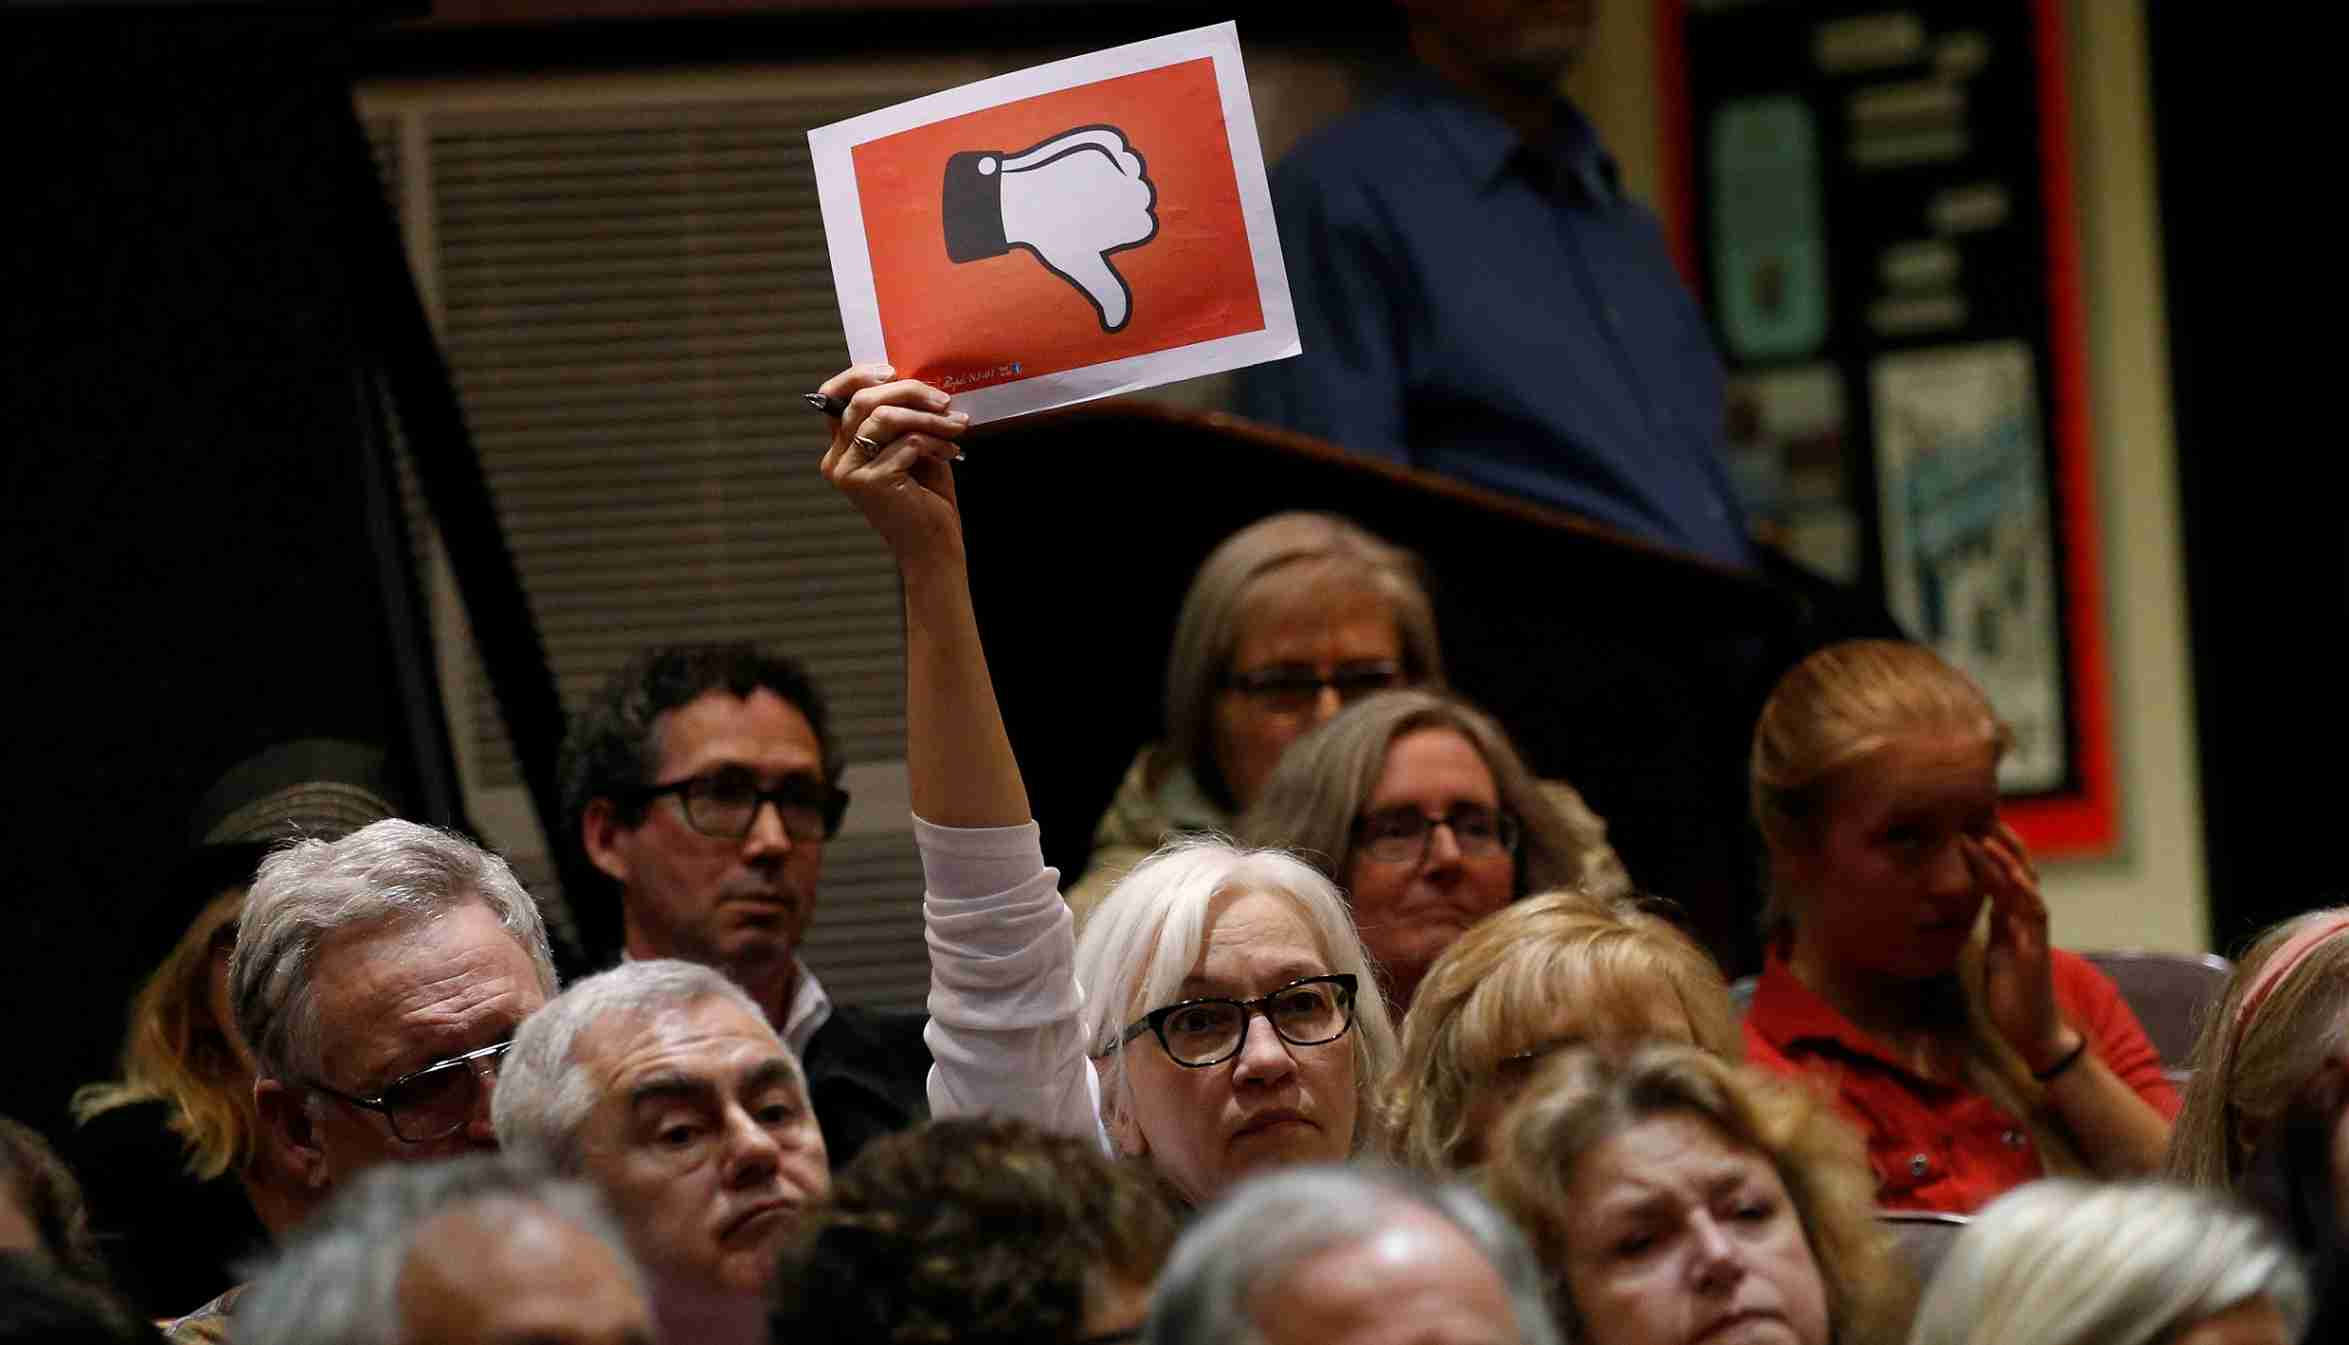 A voter holds up a sign during a town hall meeting with constituents by U.S. Representative Leonard Lance (R-NJ) in Cranford, New Jersey, U.S., May 30, 2017. REUTERS/Mike Segar - RTX38ALZ